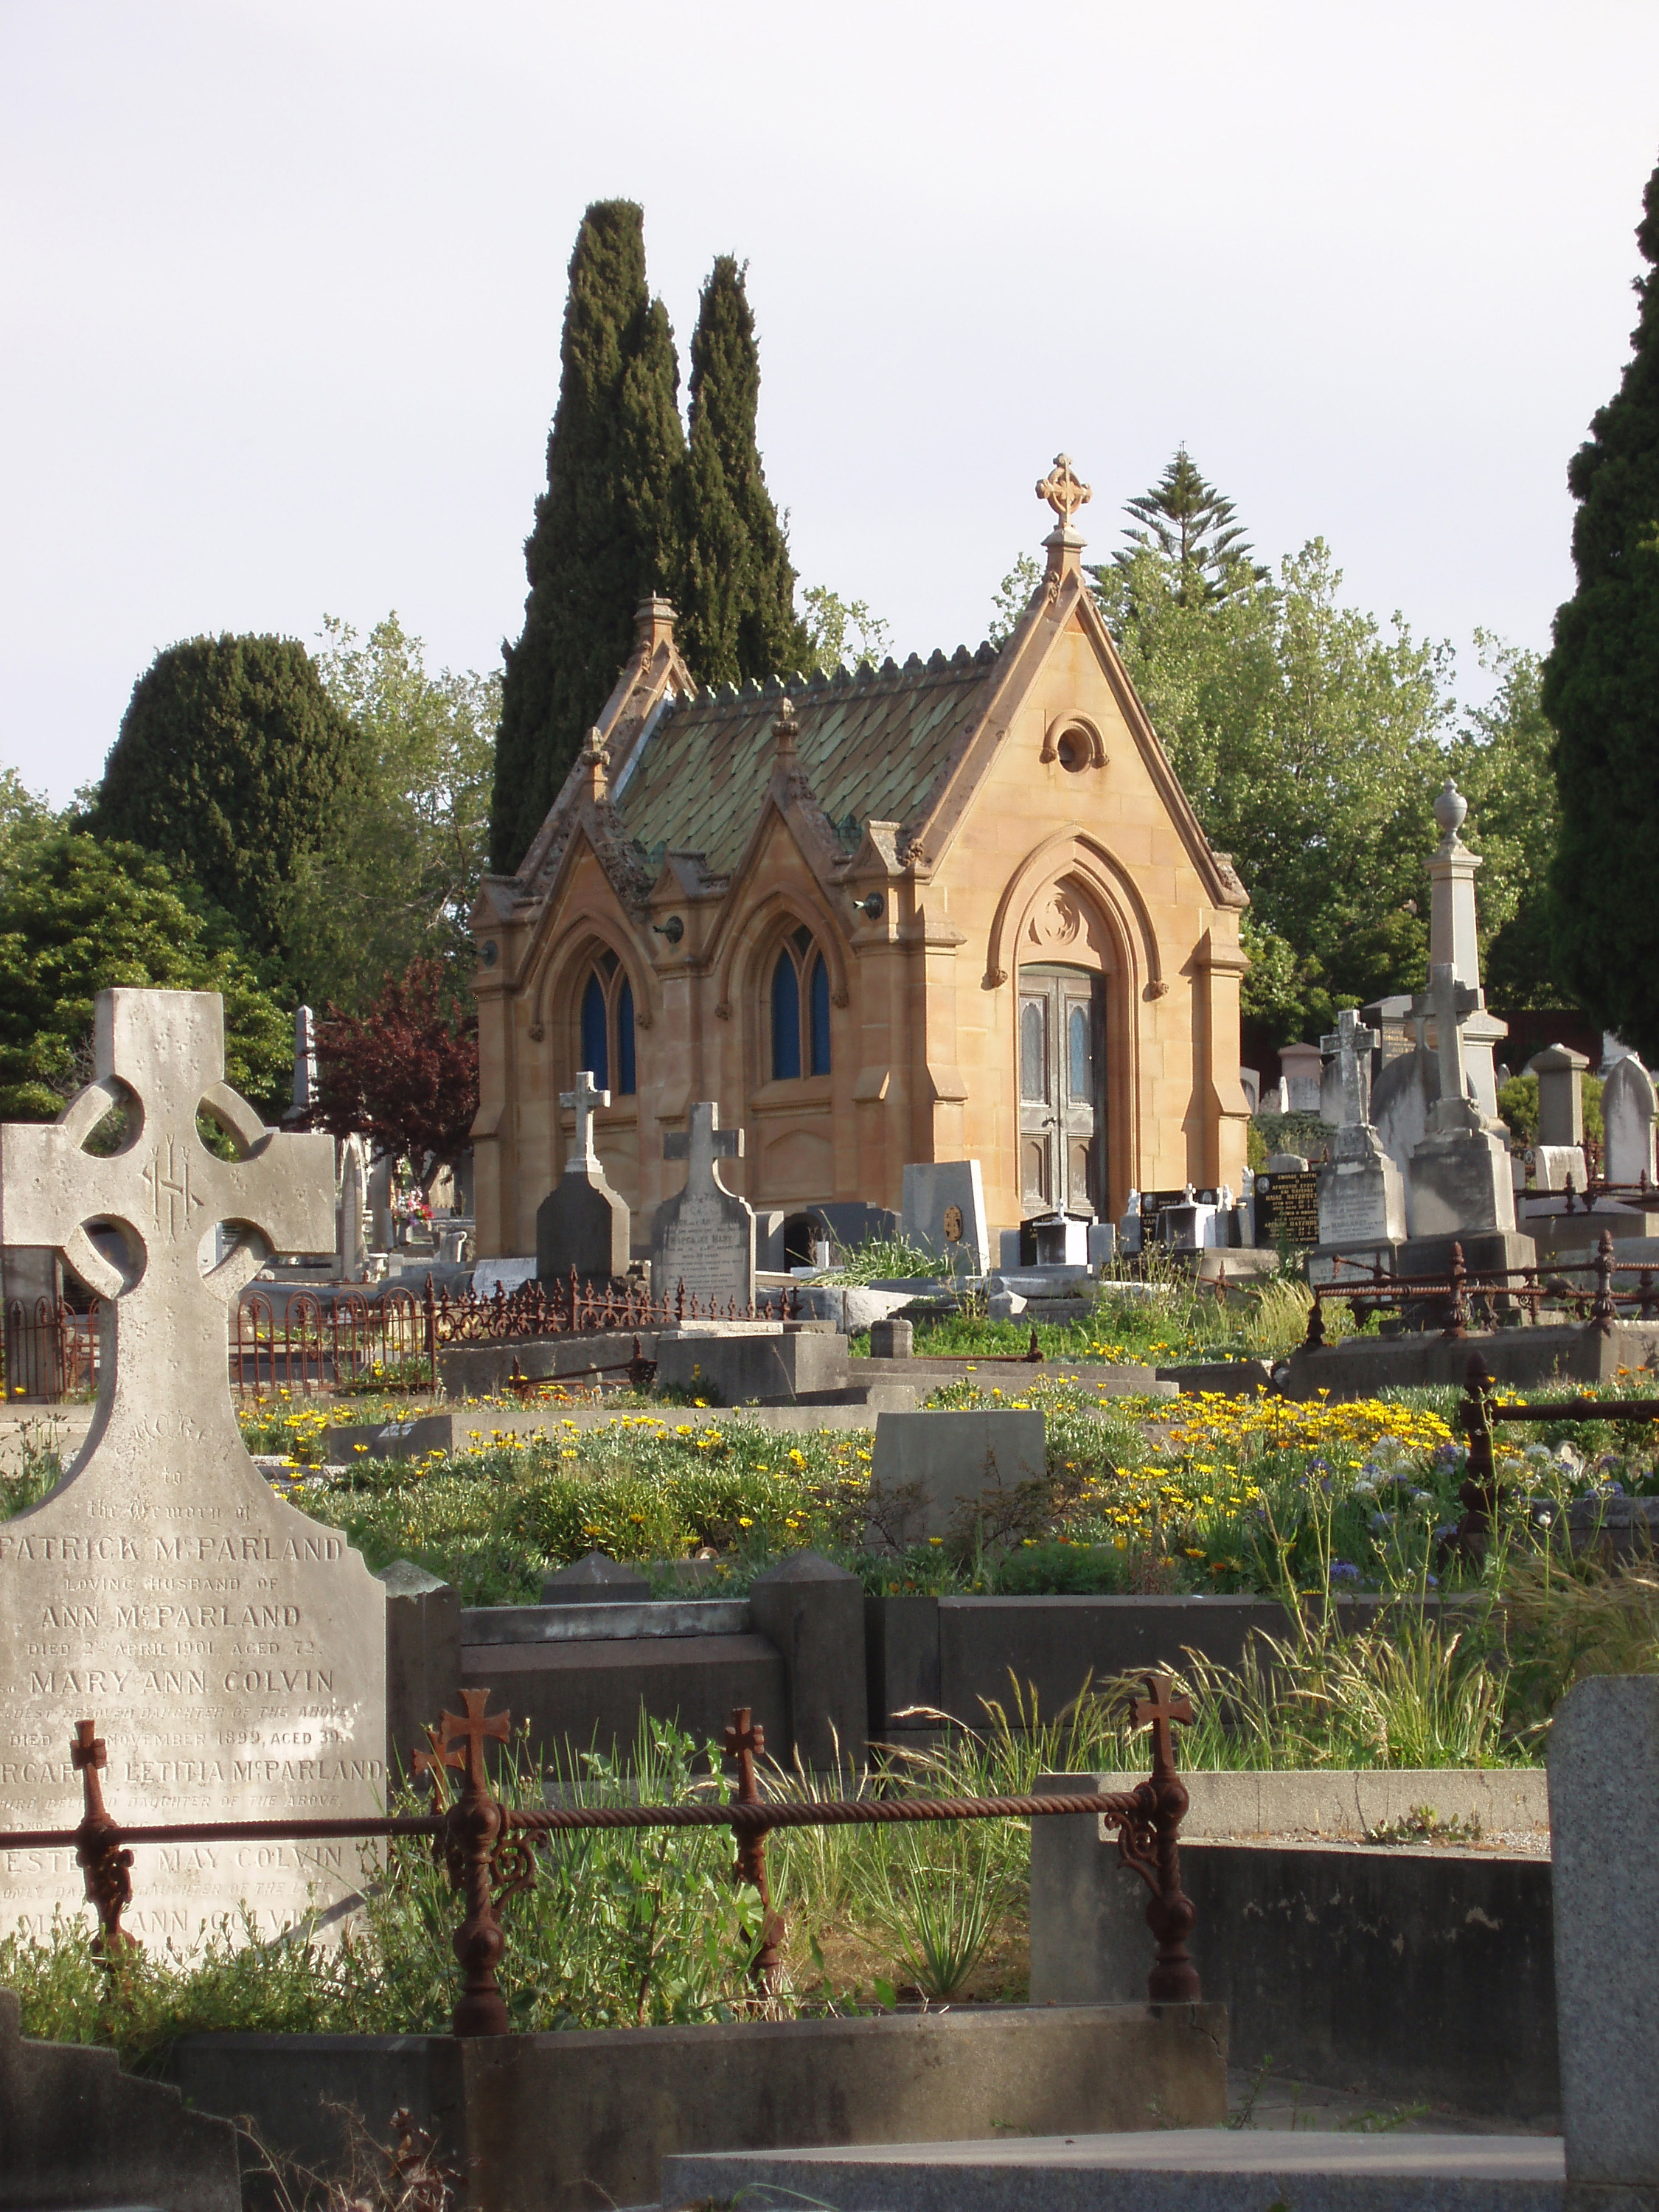 headstones and a small stone crypt in a cemetery